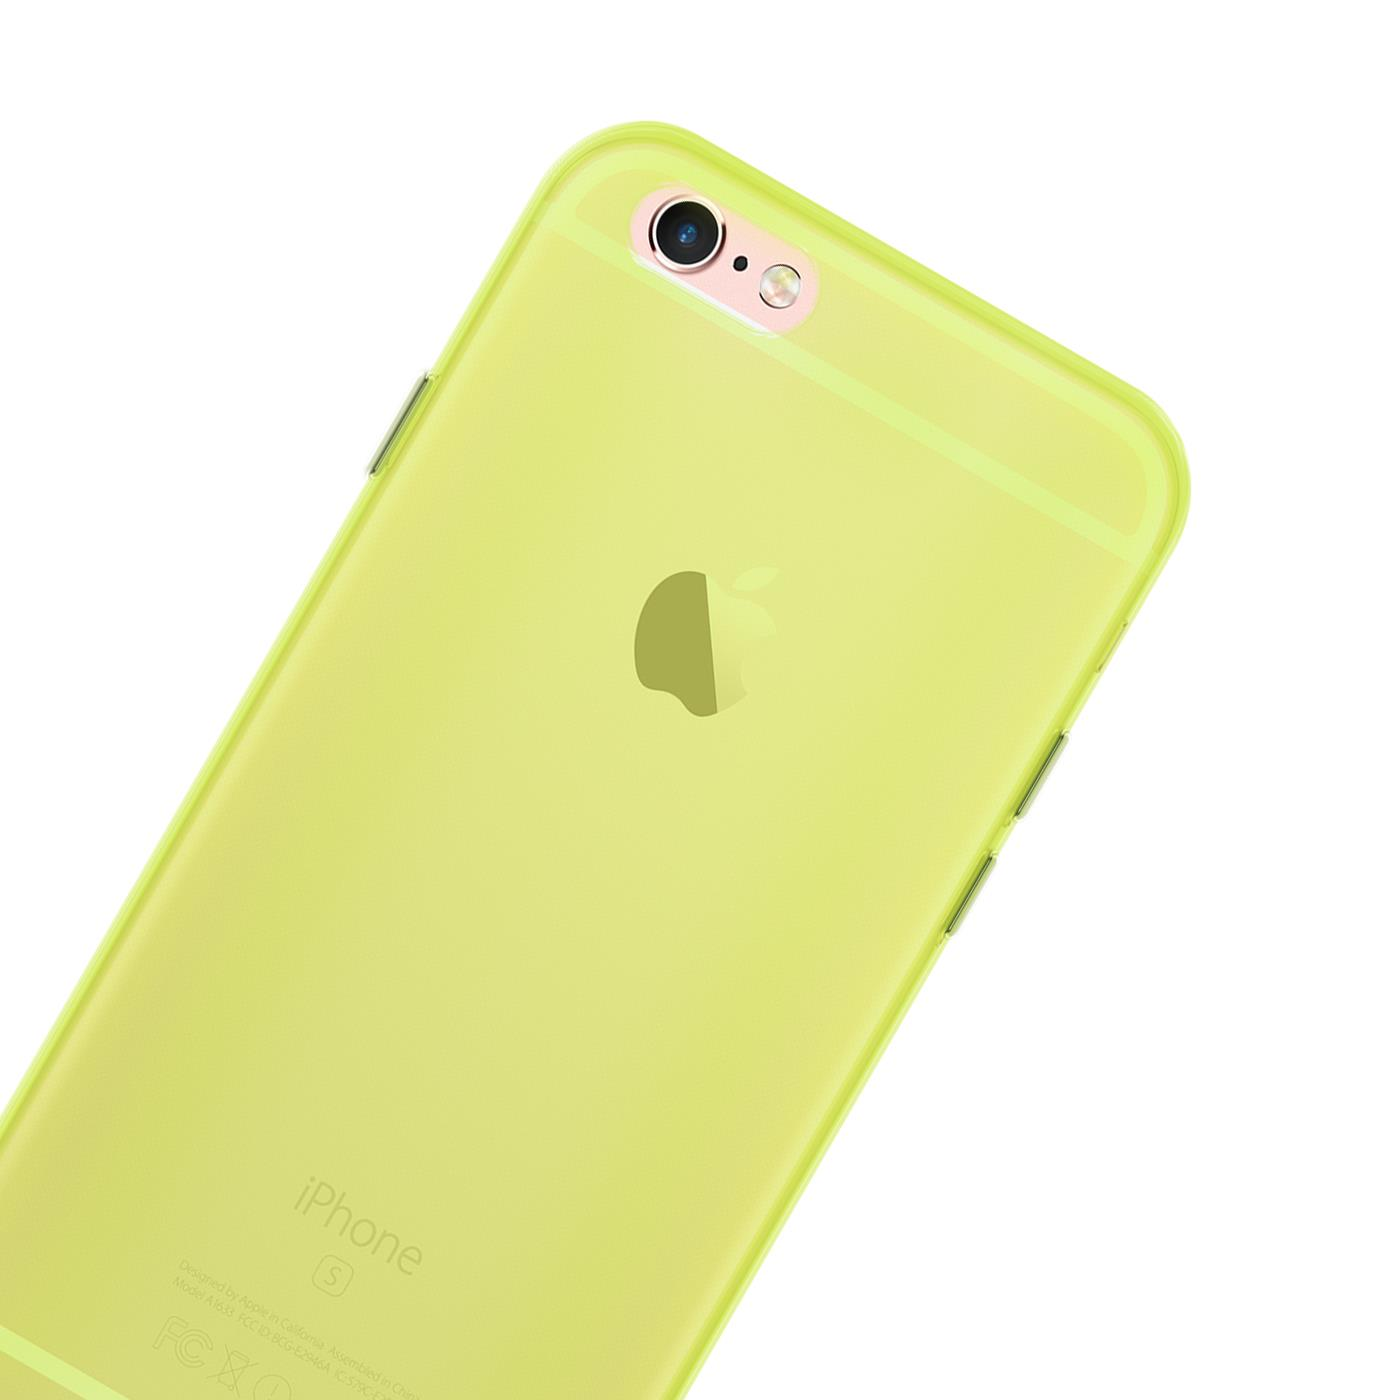 Handy-Huelle-Silikon-Case-Schutz-Tasche-Duenn-Slim-Cover-fuer-Apple-iPhone-Modelle Indexbild 18